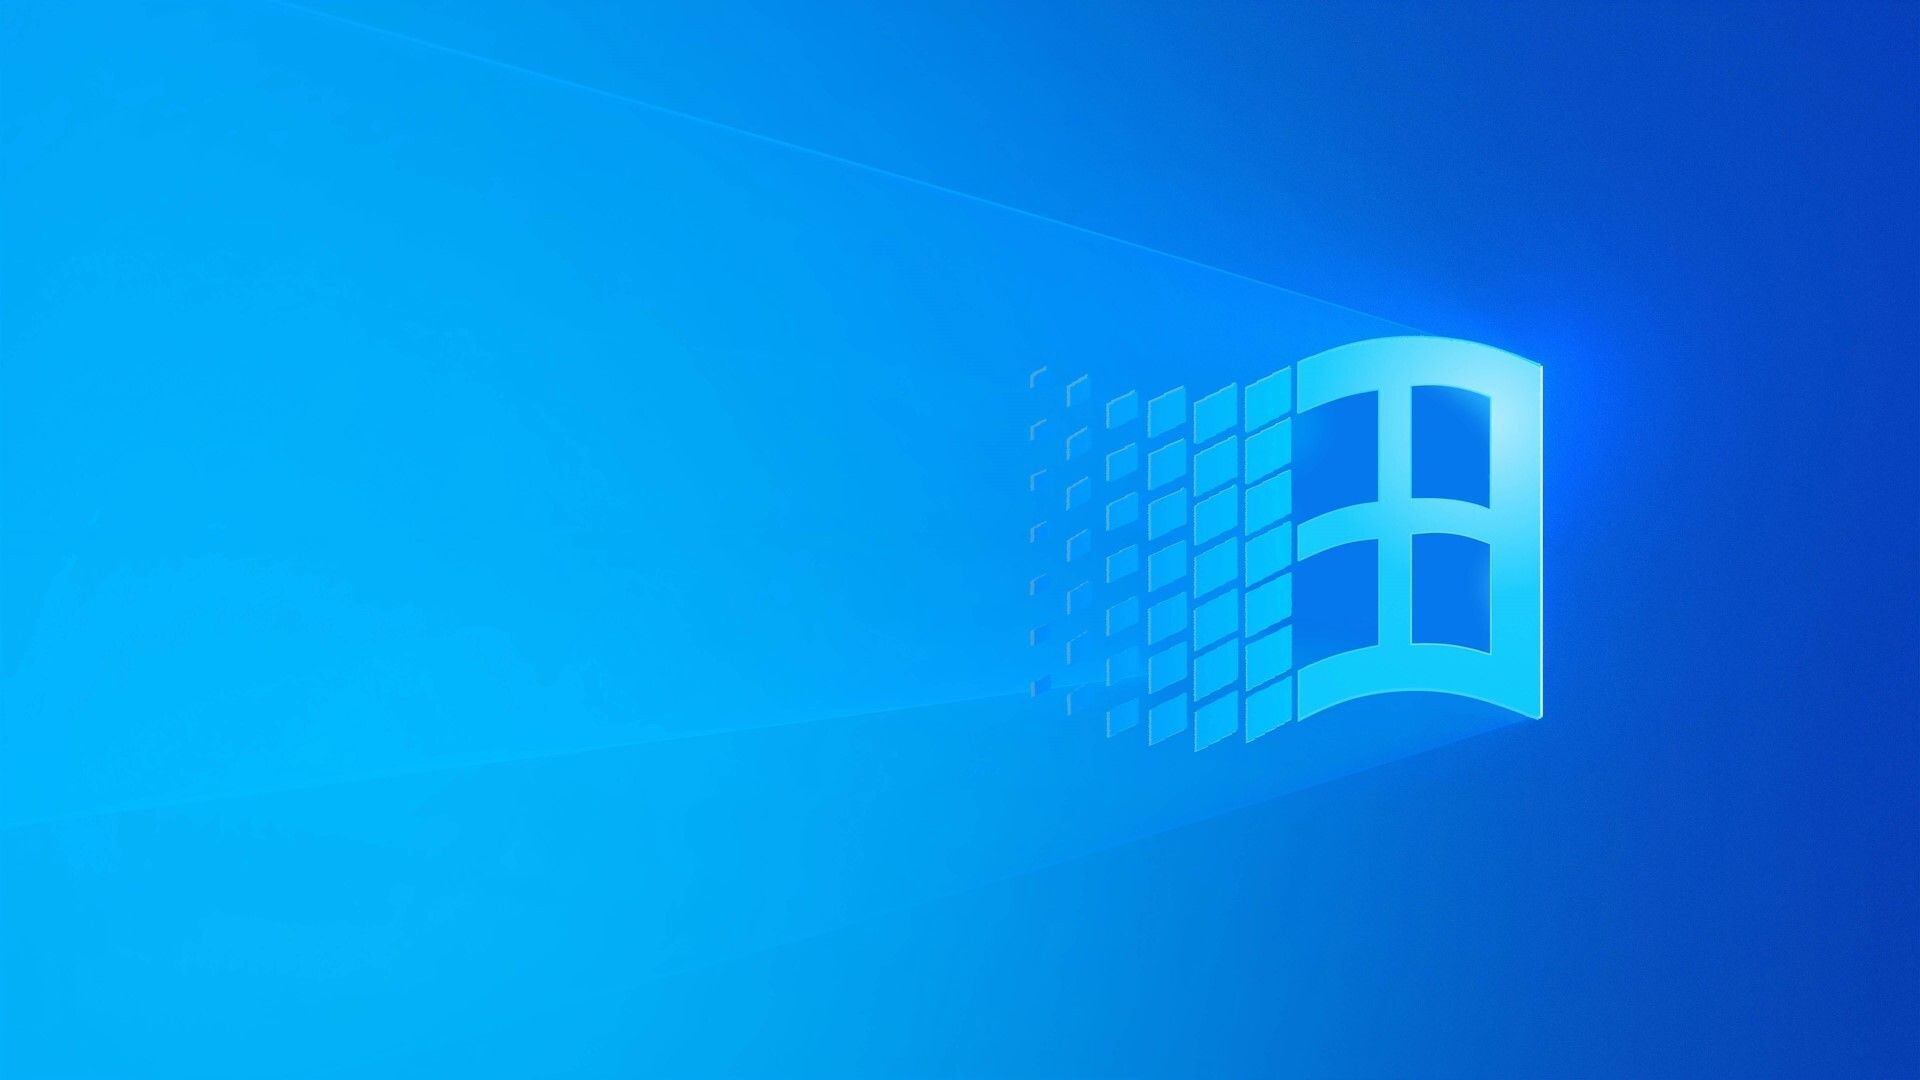 Cómo optimizar Windows 10 para acelerar el sistema al máximo